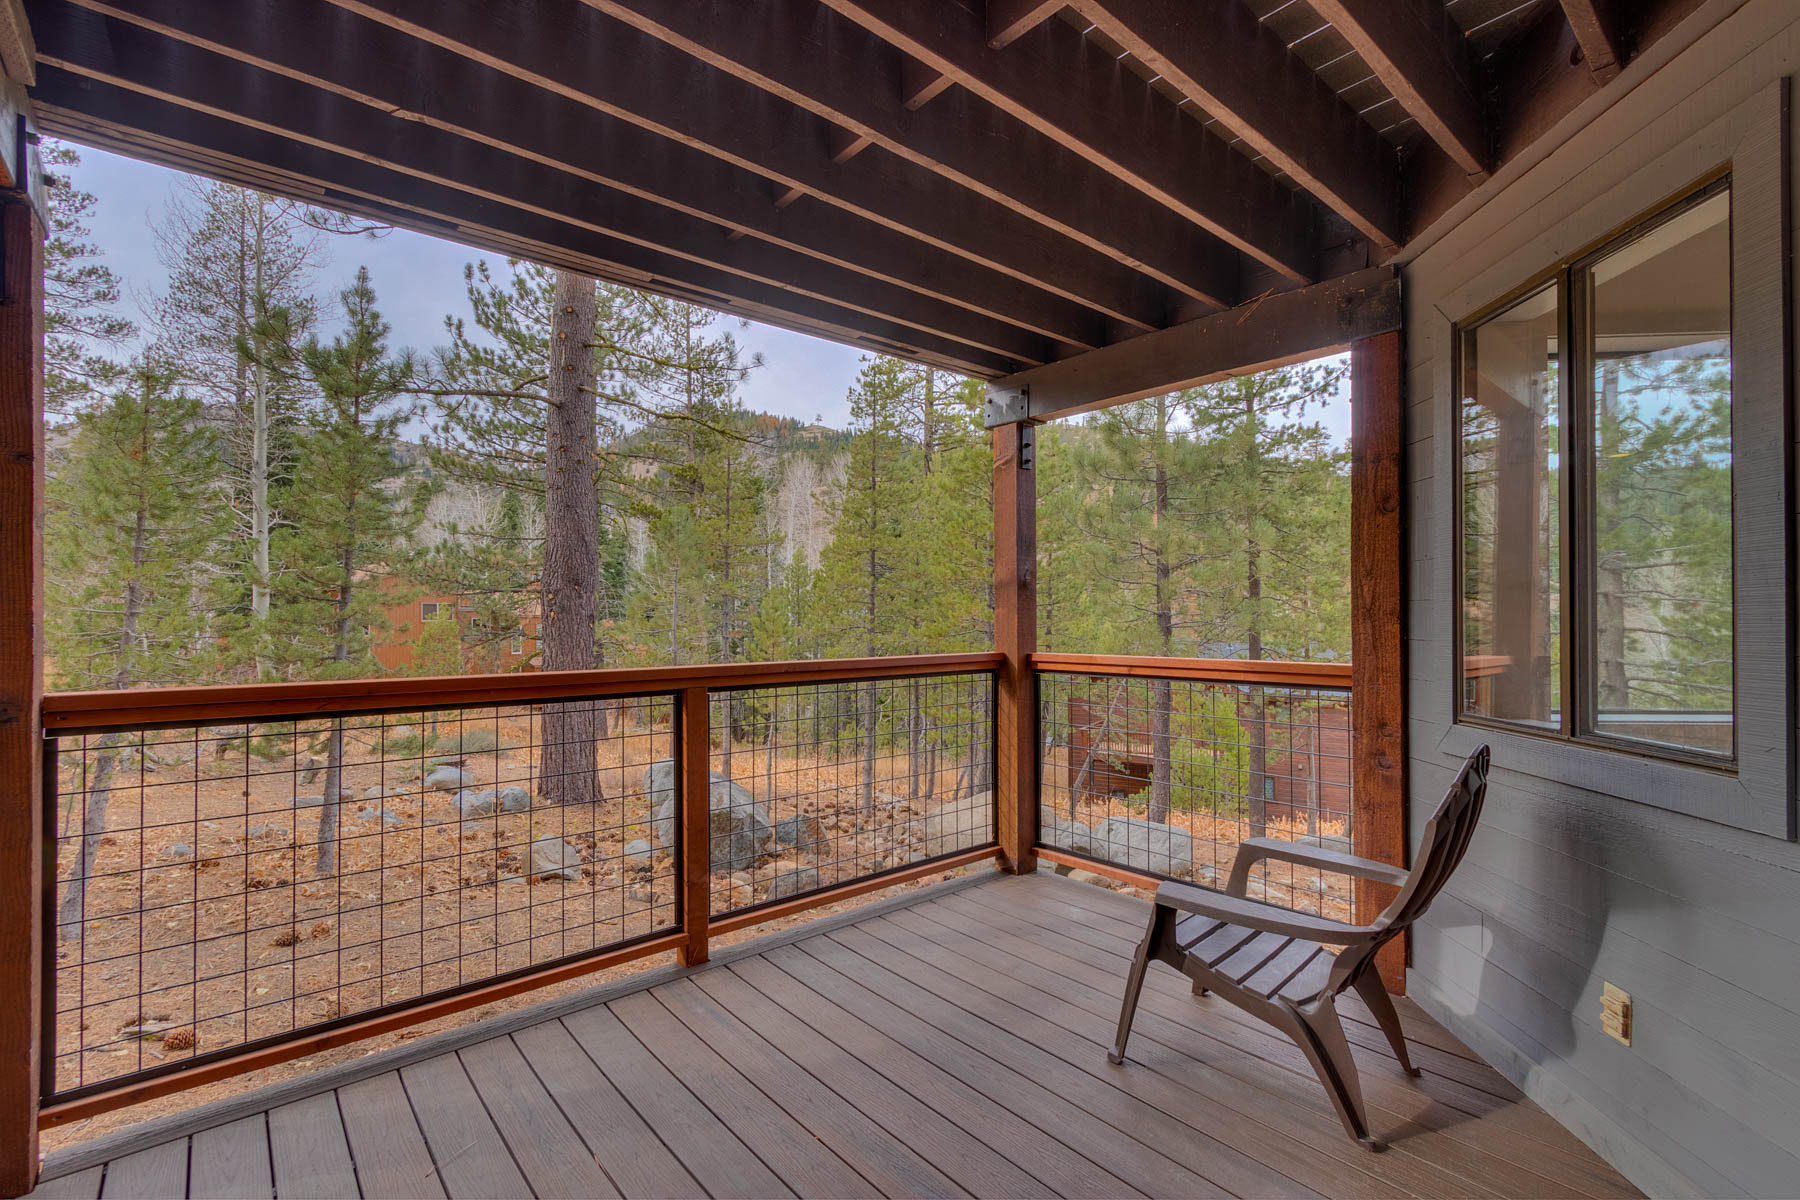 Additional photo for property listing at 1370 Pine Trail, Alpine Meadows, CA 1370 Pine Trail Alpine Meadows, California 96146 United States